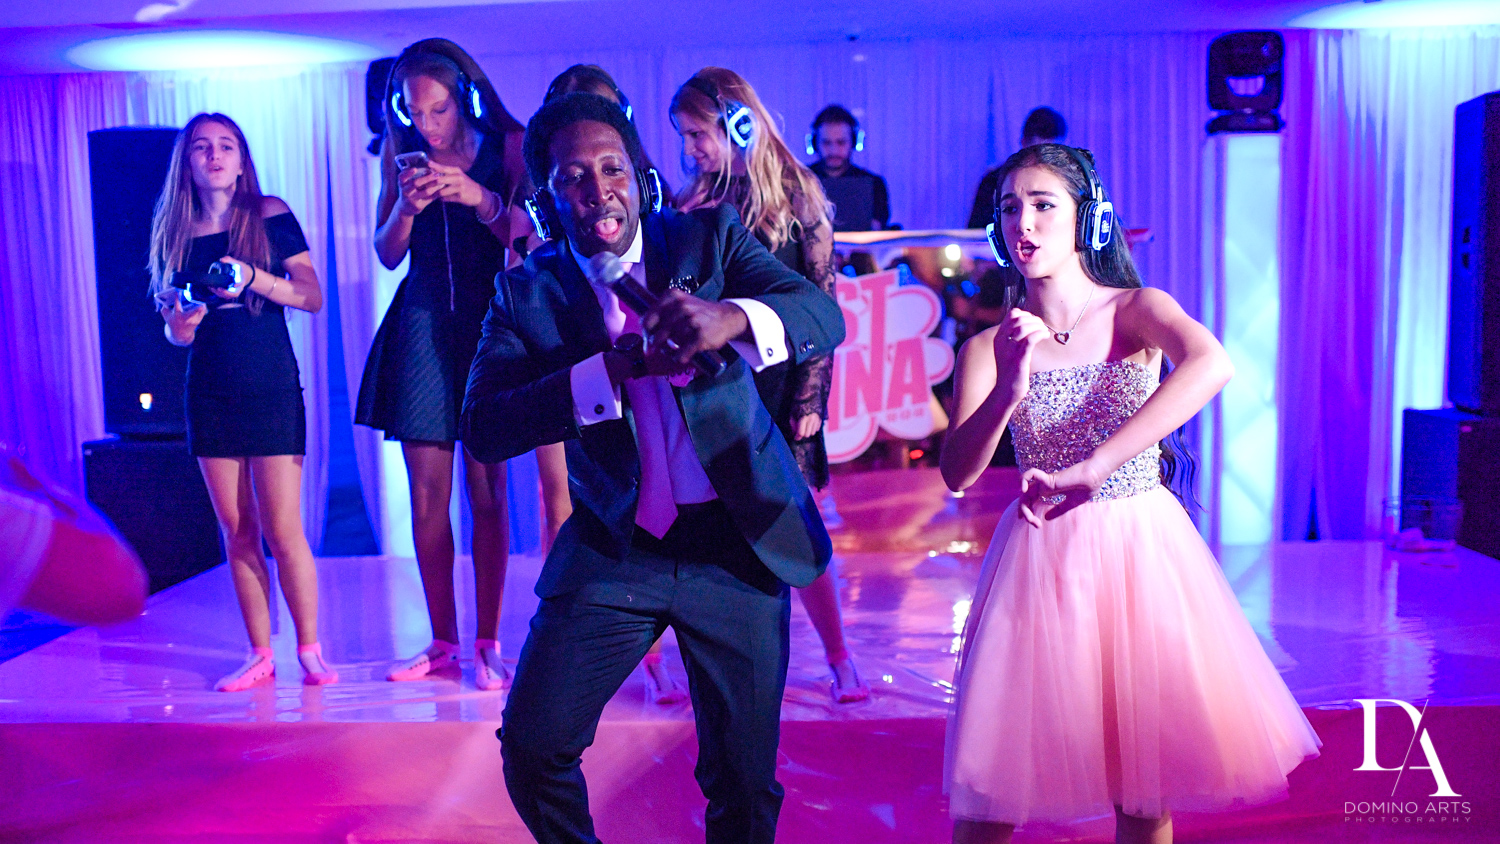 Triple P Entertainment Silent party fun pictures at Bat Mitzvah at Saint Andrews Country Club South Florida by Domino Arts Photography